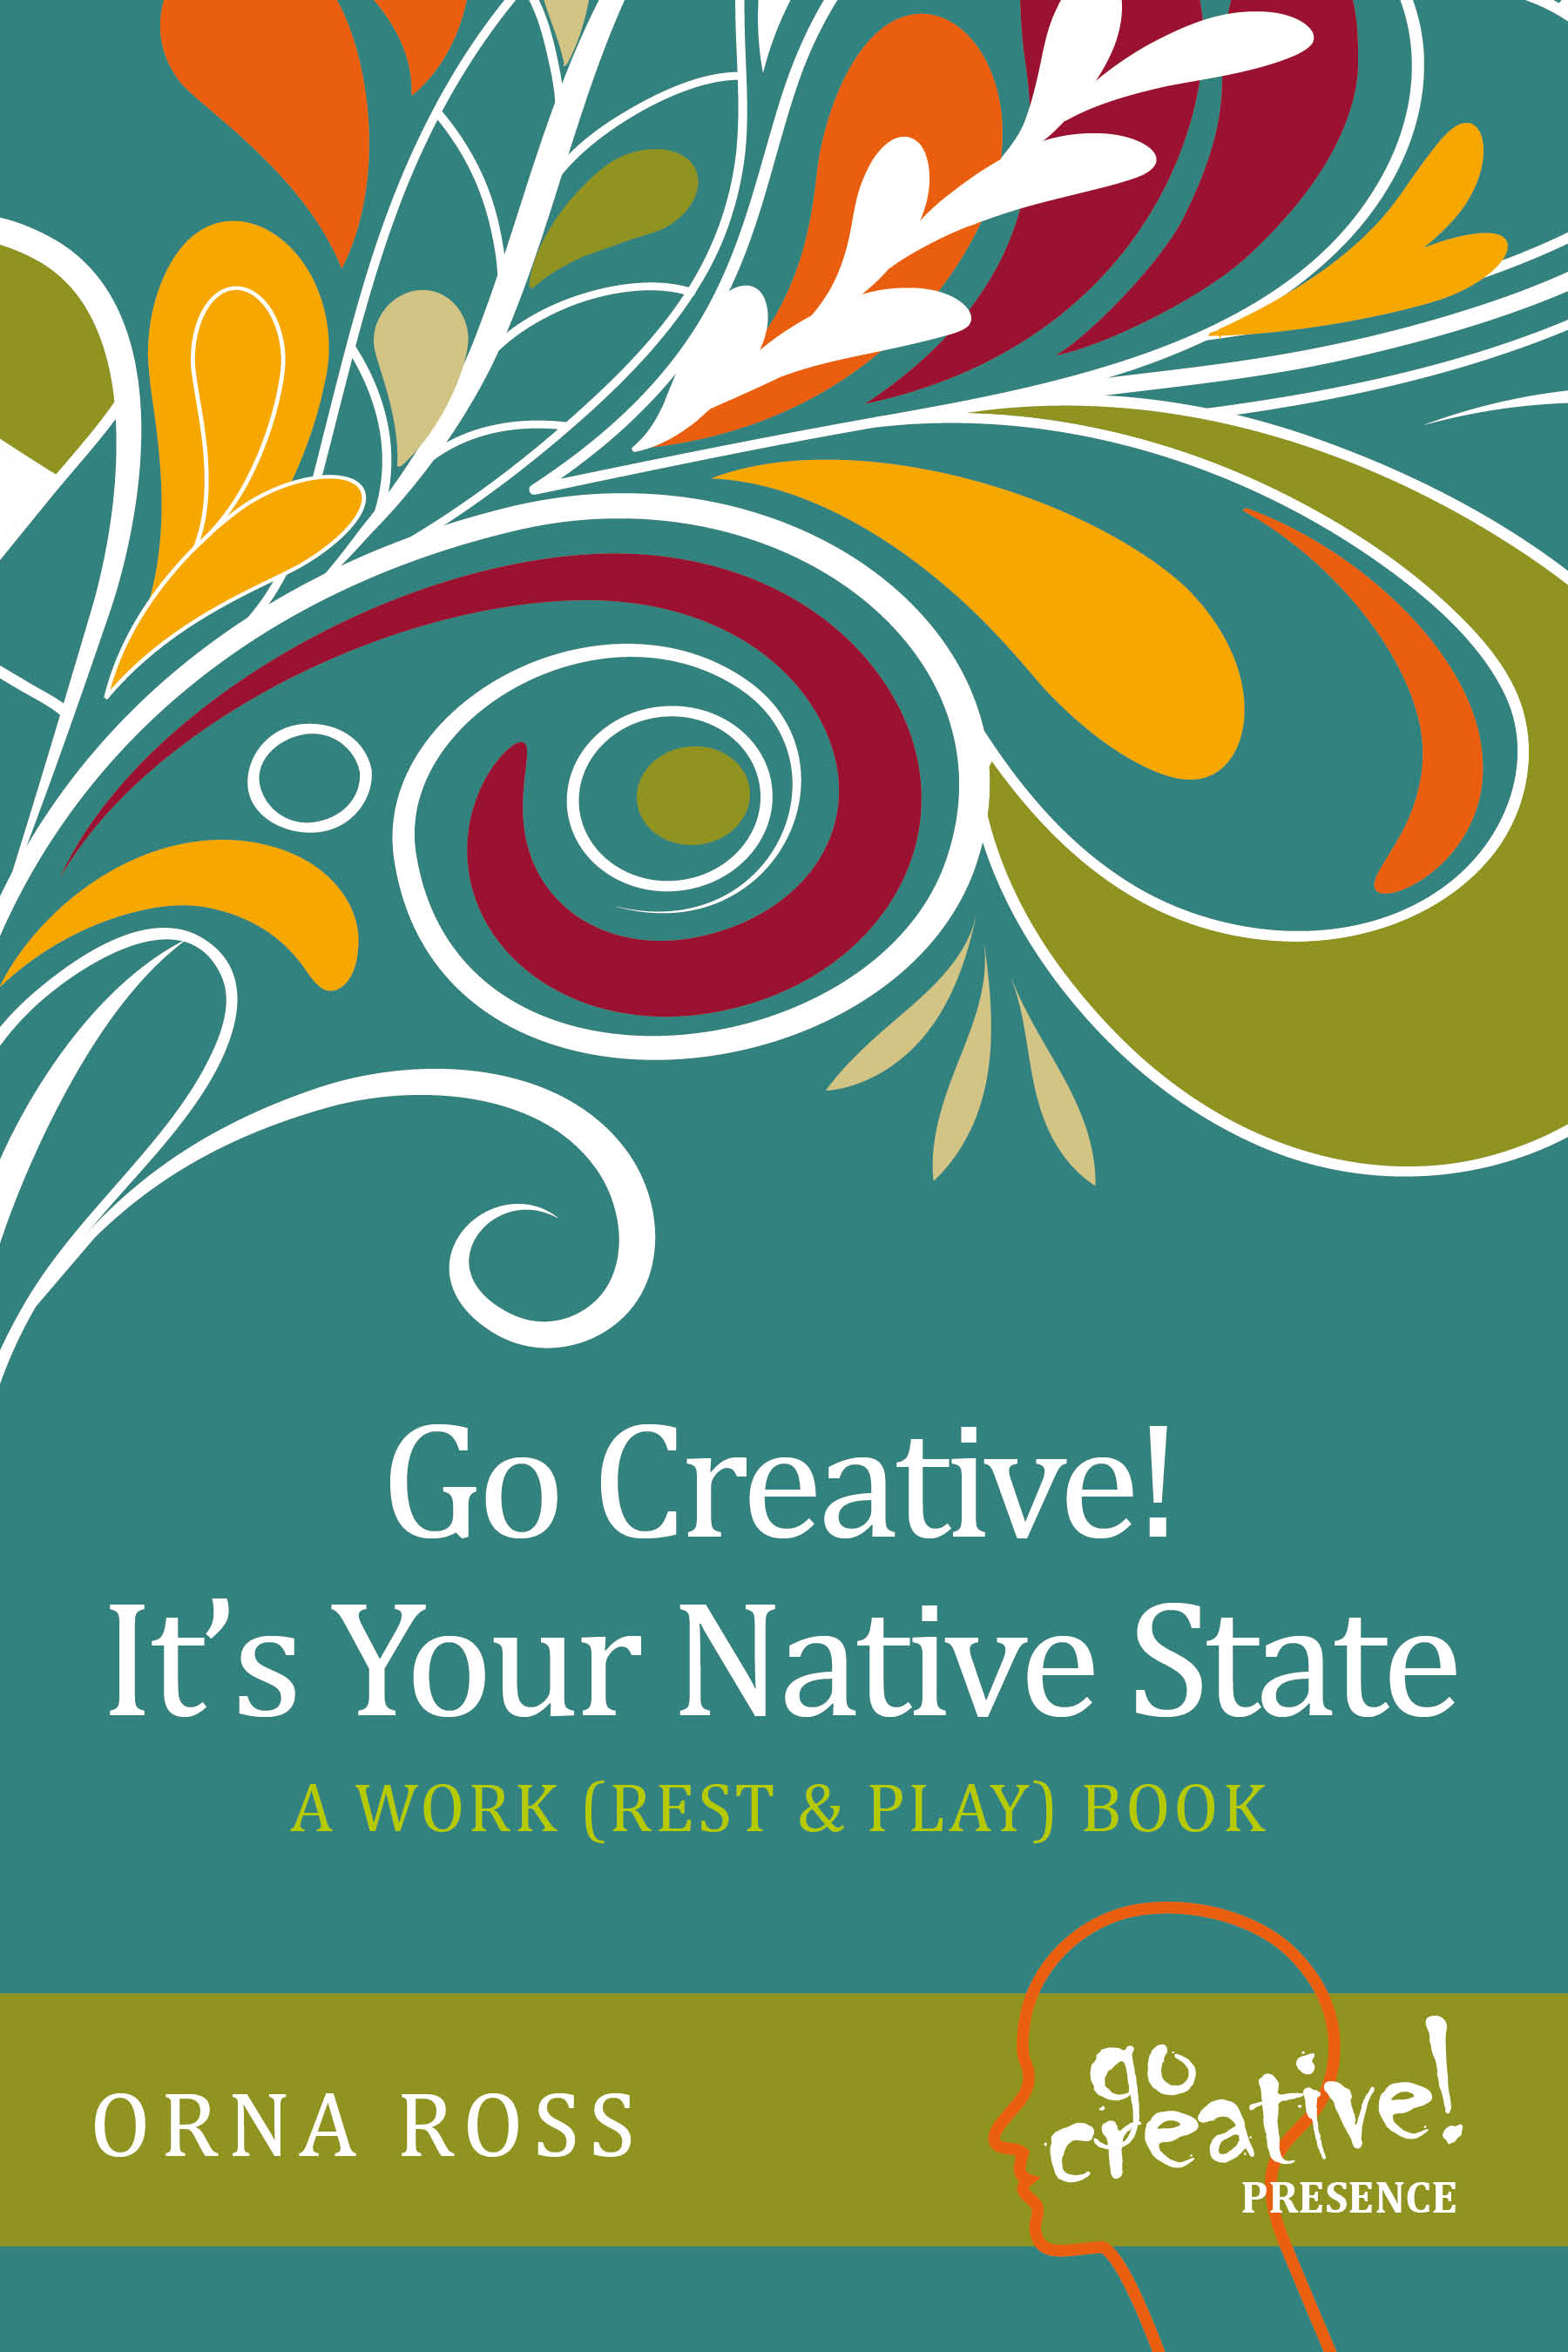 Go Creative! Work-Rest-Playbook Cover